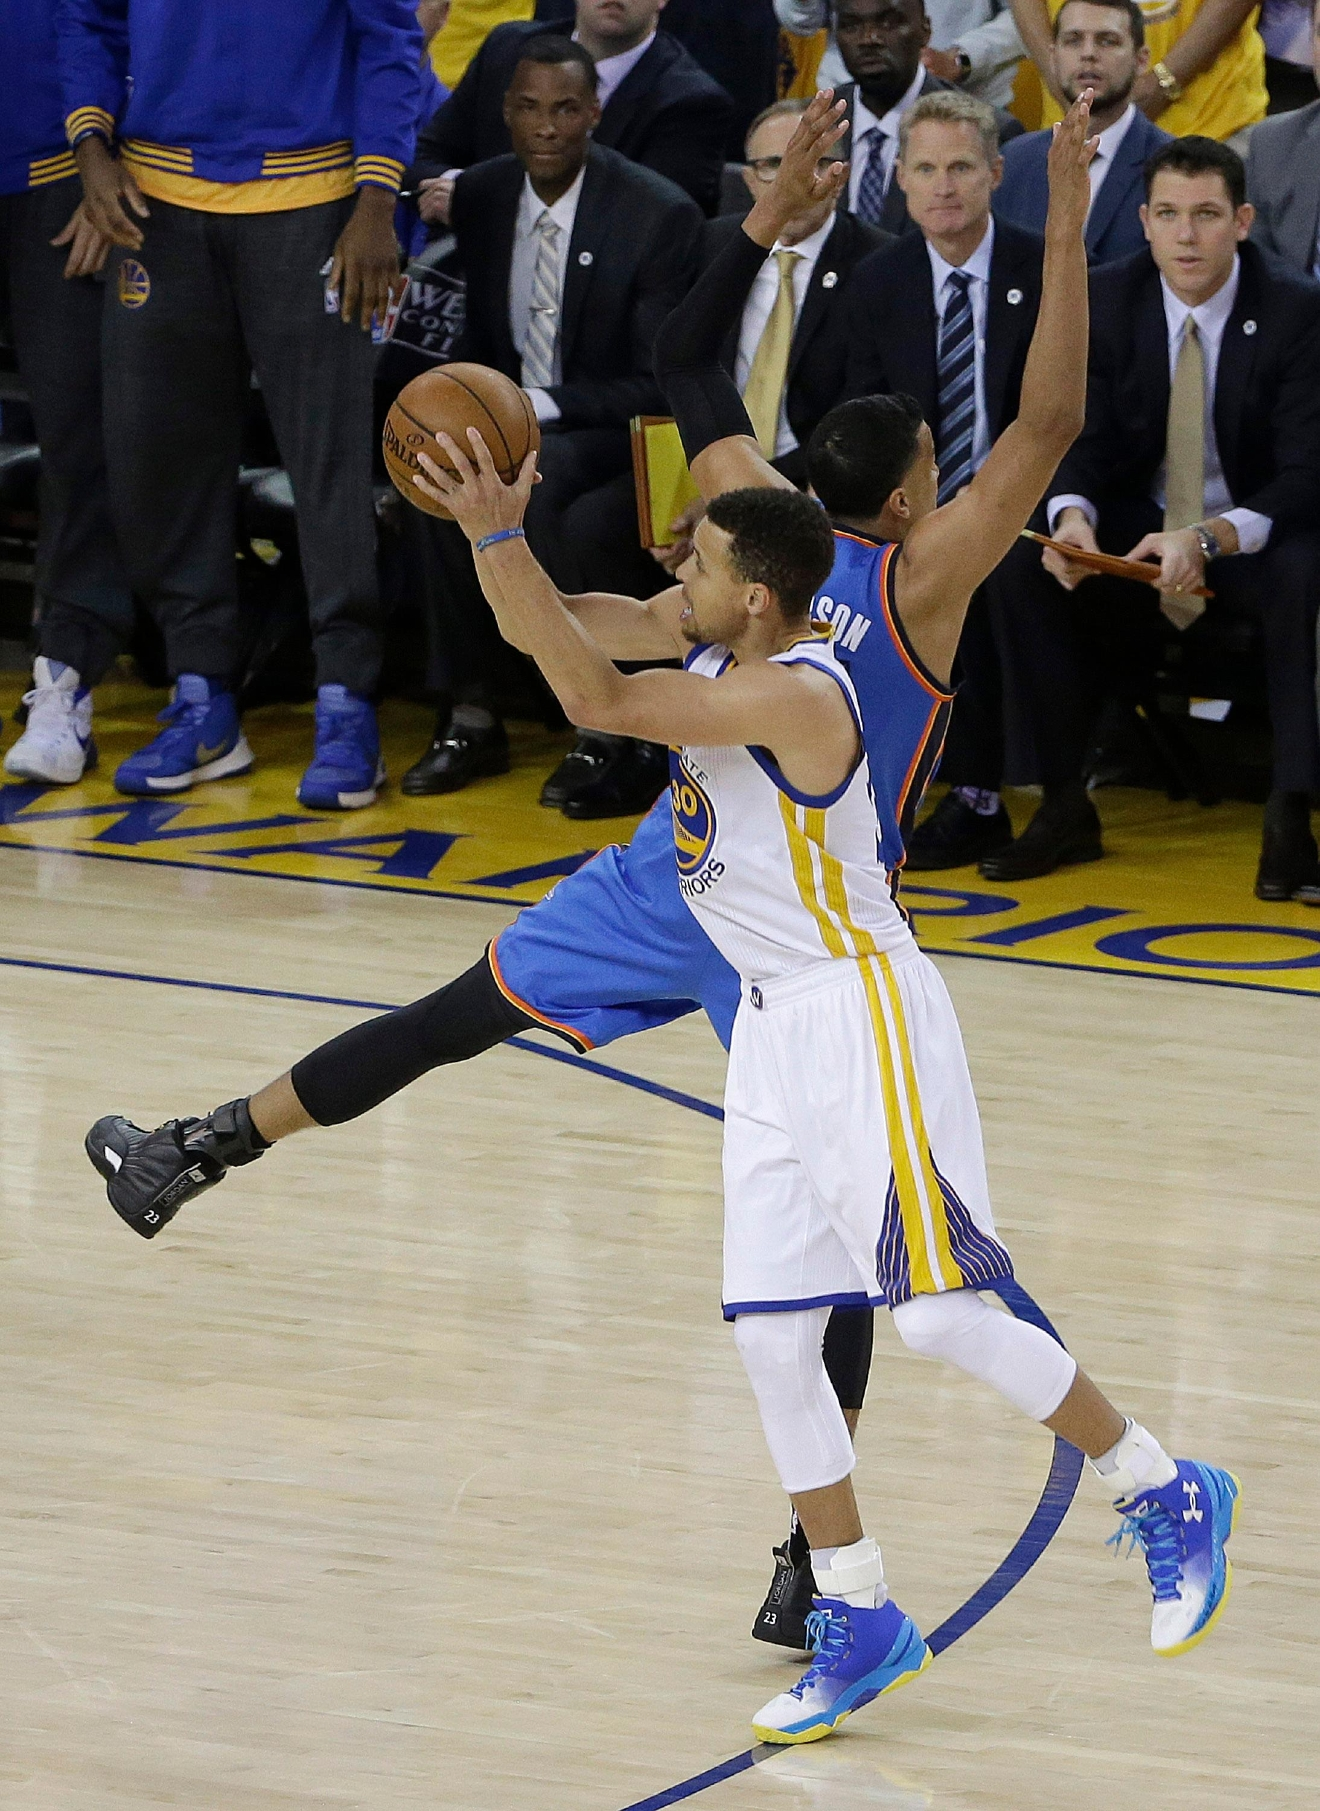 Golden State Warriors guard Stephen Curry, foreground, shoots a 3-point basket against Oklahoma City Thunder guard Andre Roberson during the first half of Game 5 of the NBA basketball Western Conference finals in Oakland, Calif., Thursday, May 26, 2016. (AP Photo/Jeff Chiu)